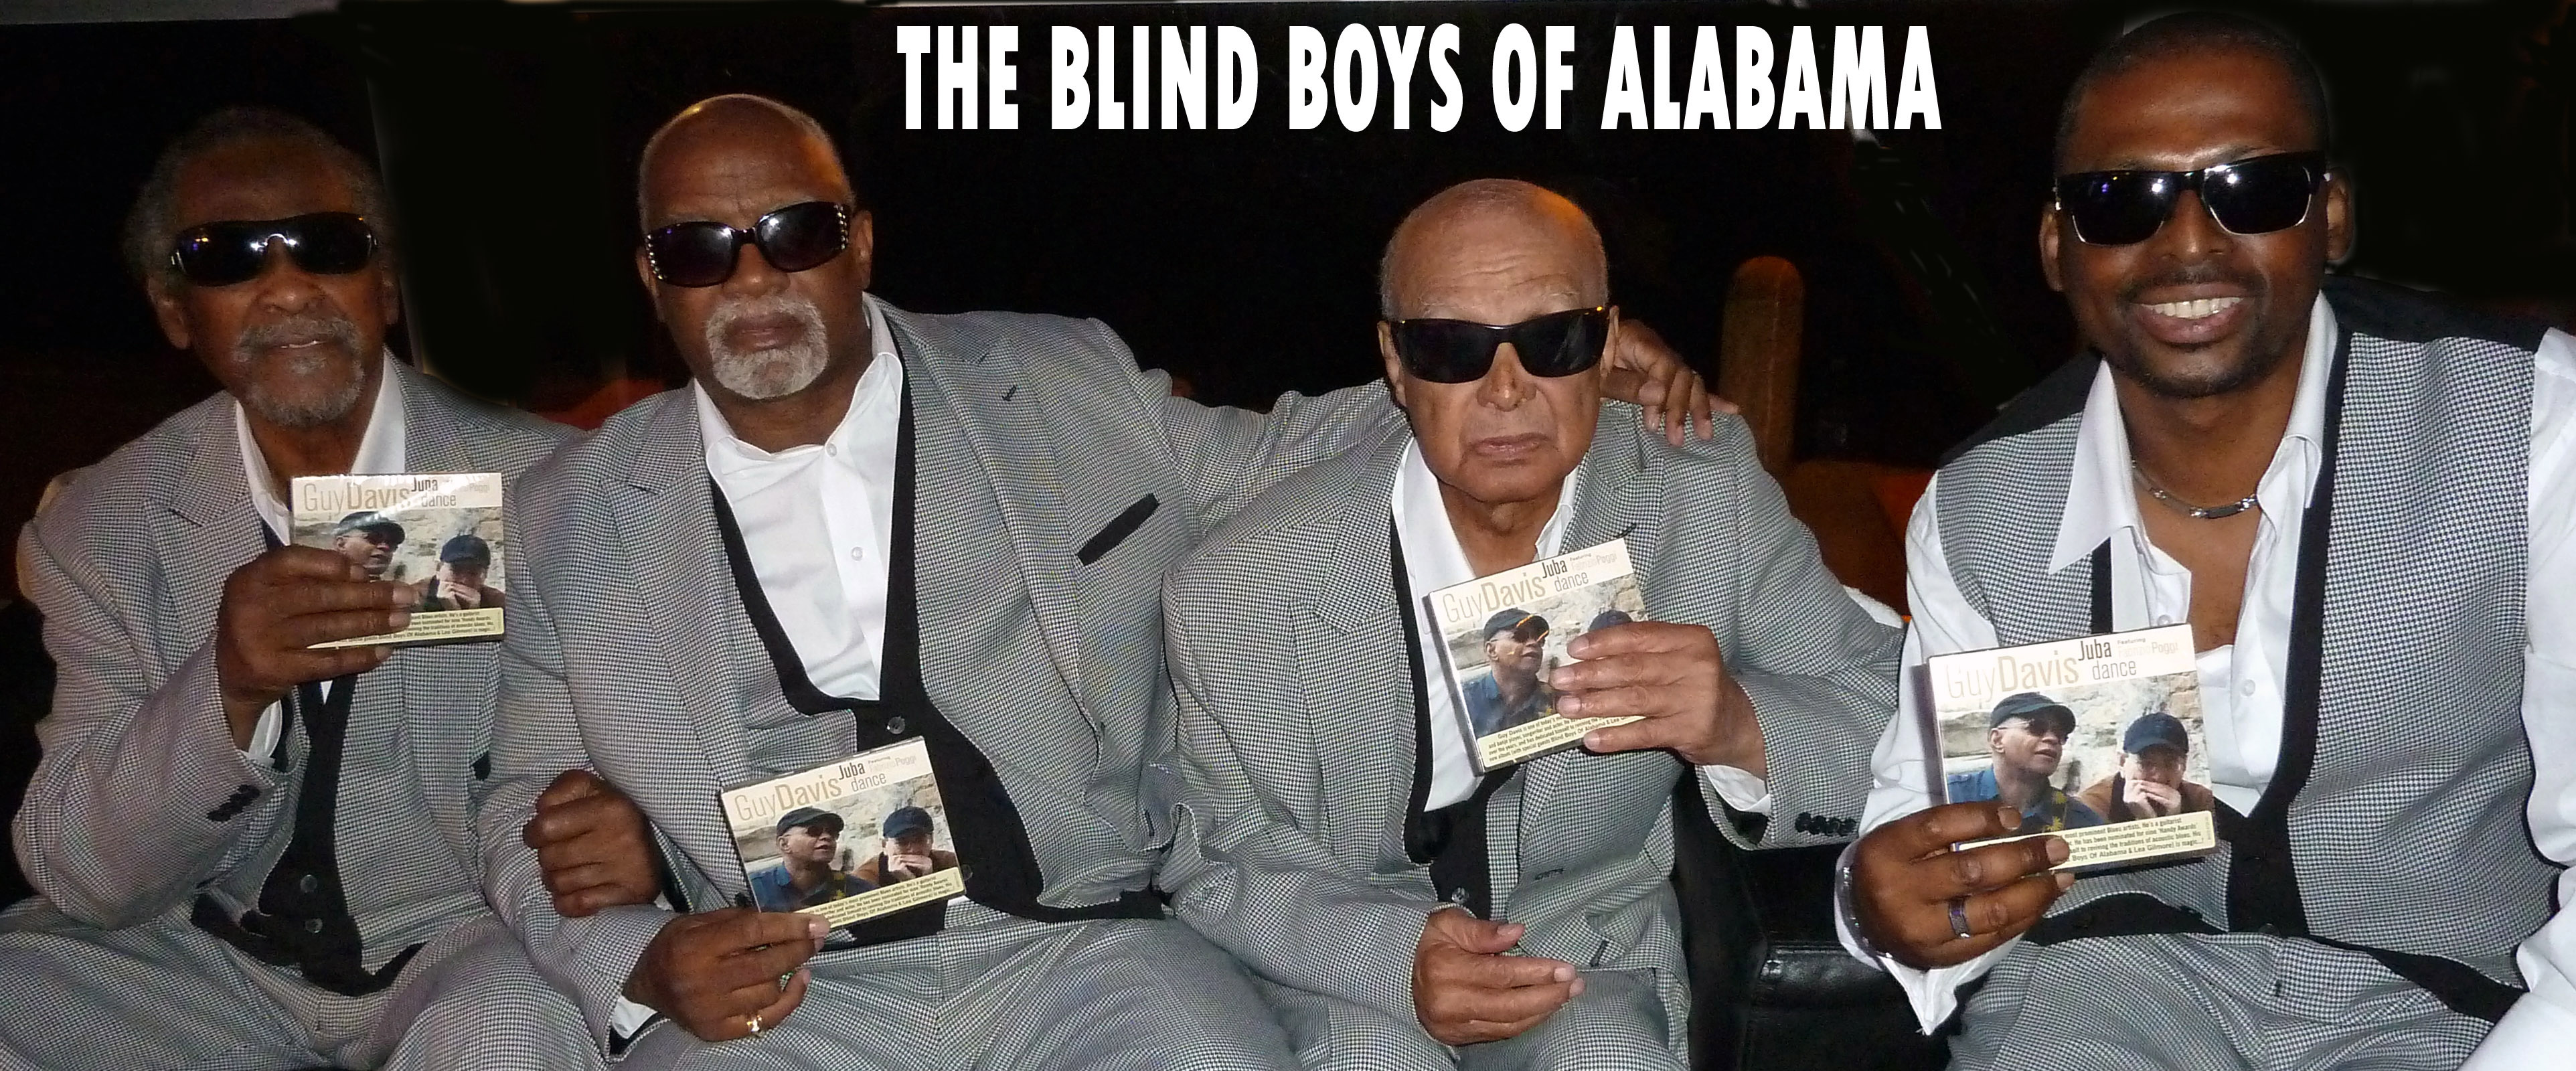 THE BLIND BOYS OF ALABAMA & JUBA DANCE